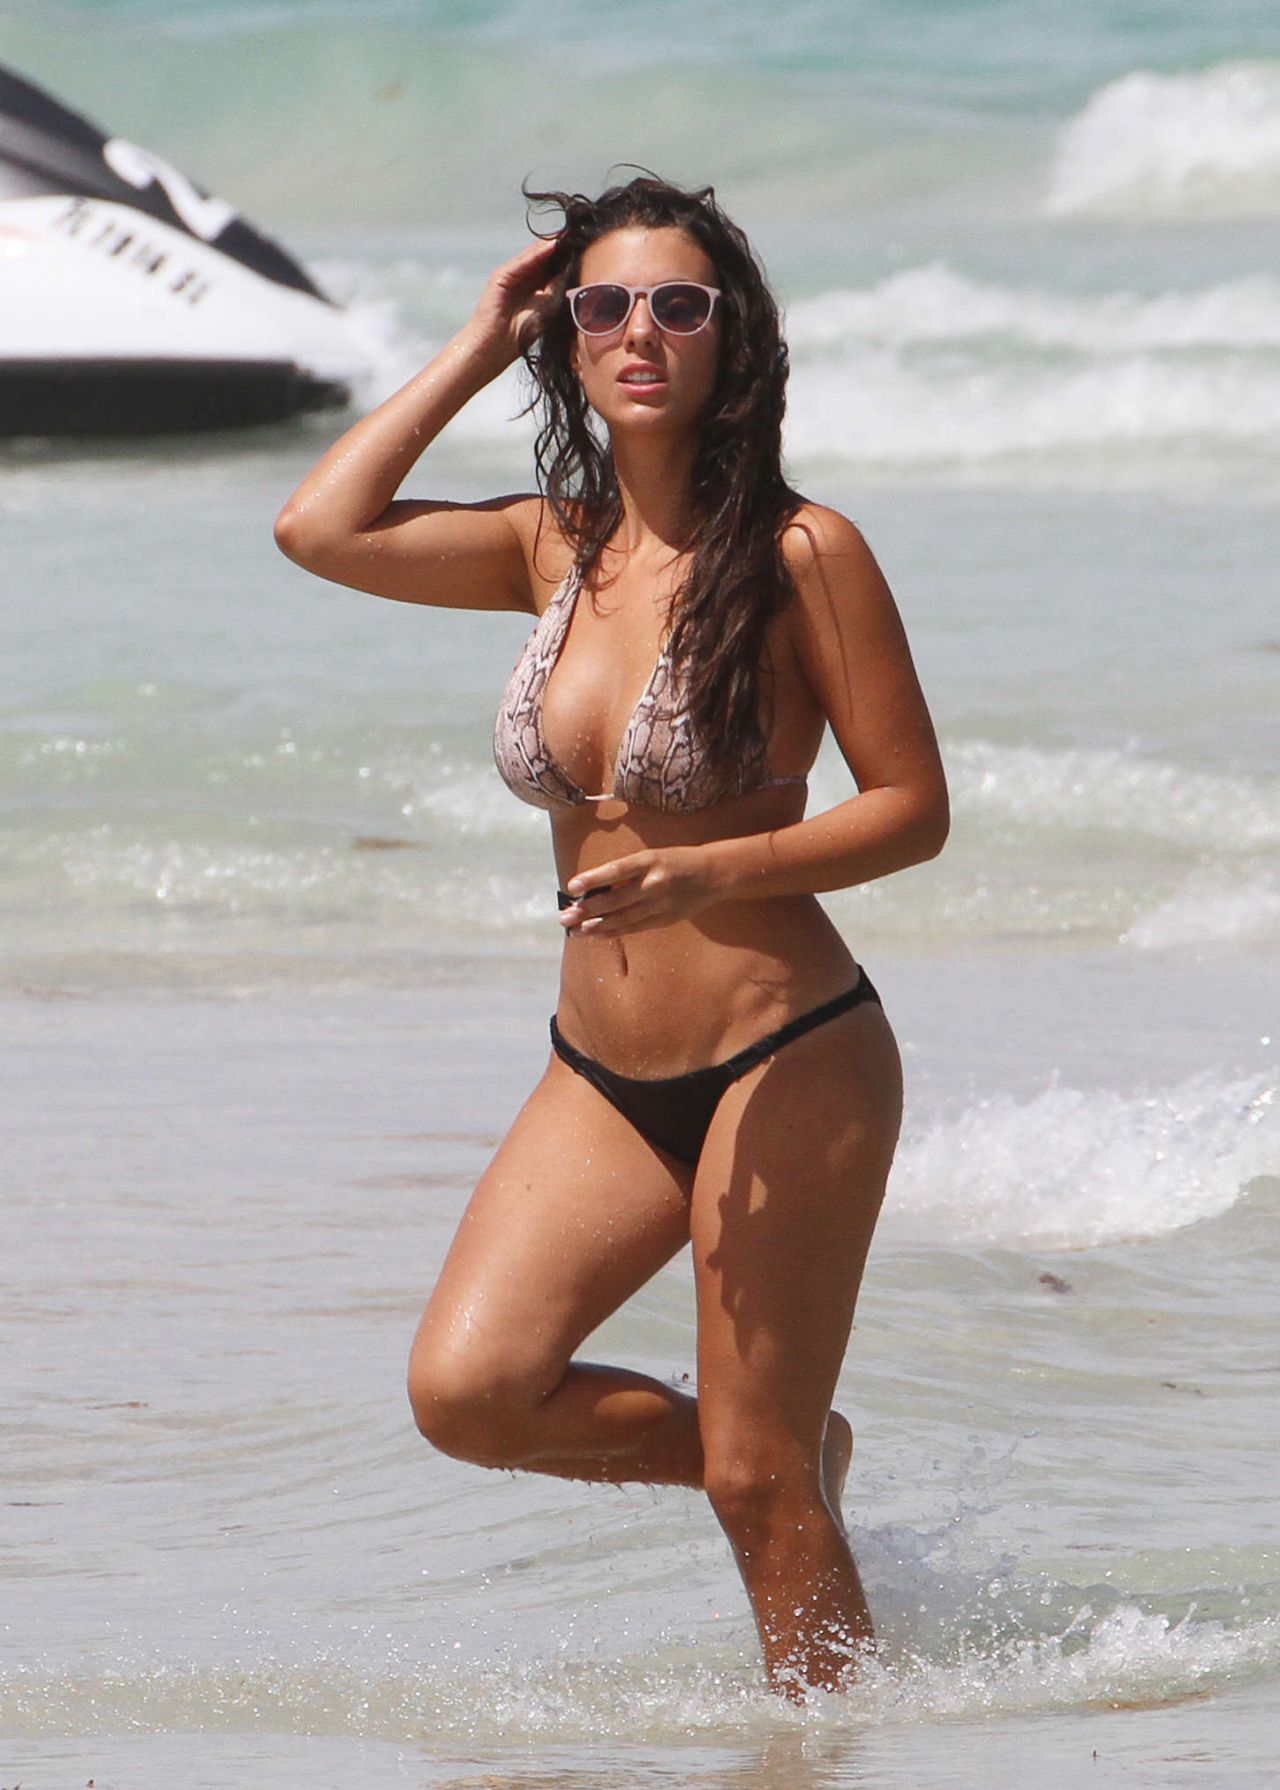 Ludivine Sagna In Bikini At A Beach In Miami 122016-9733